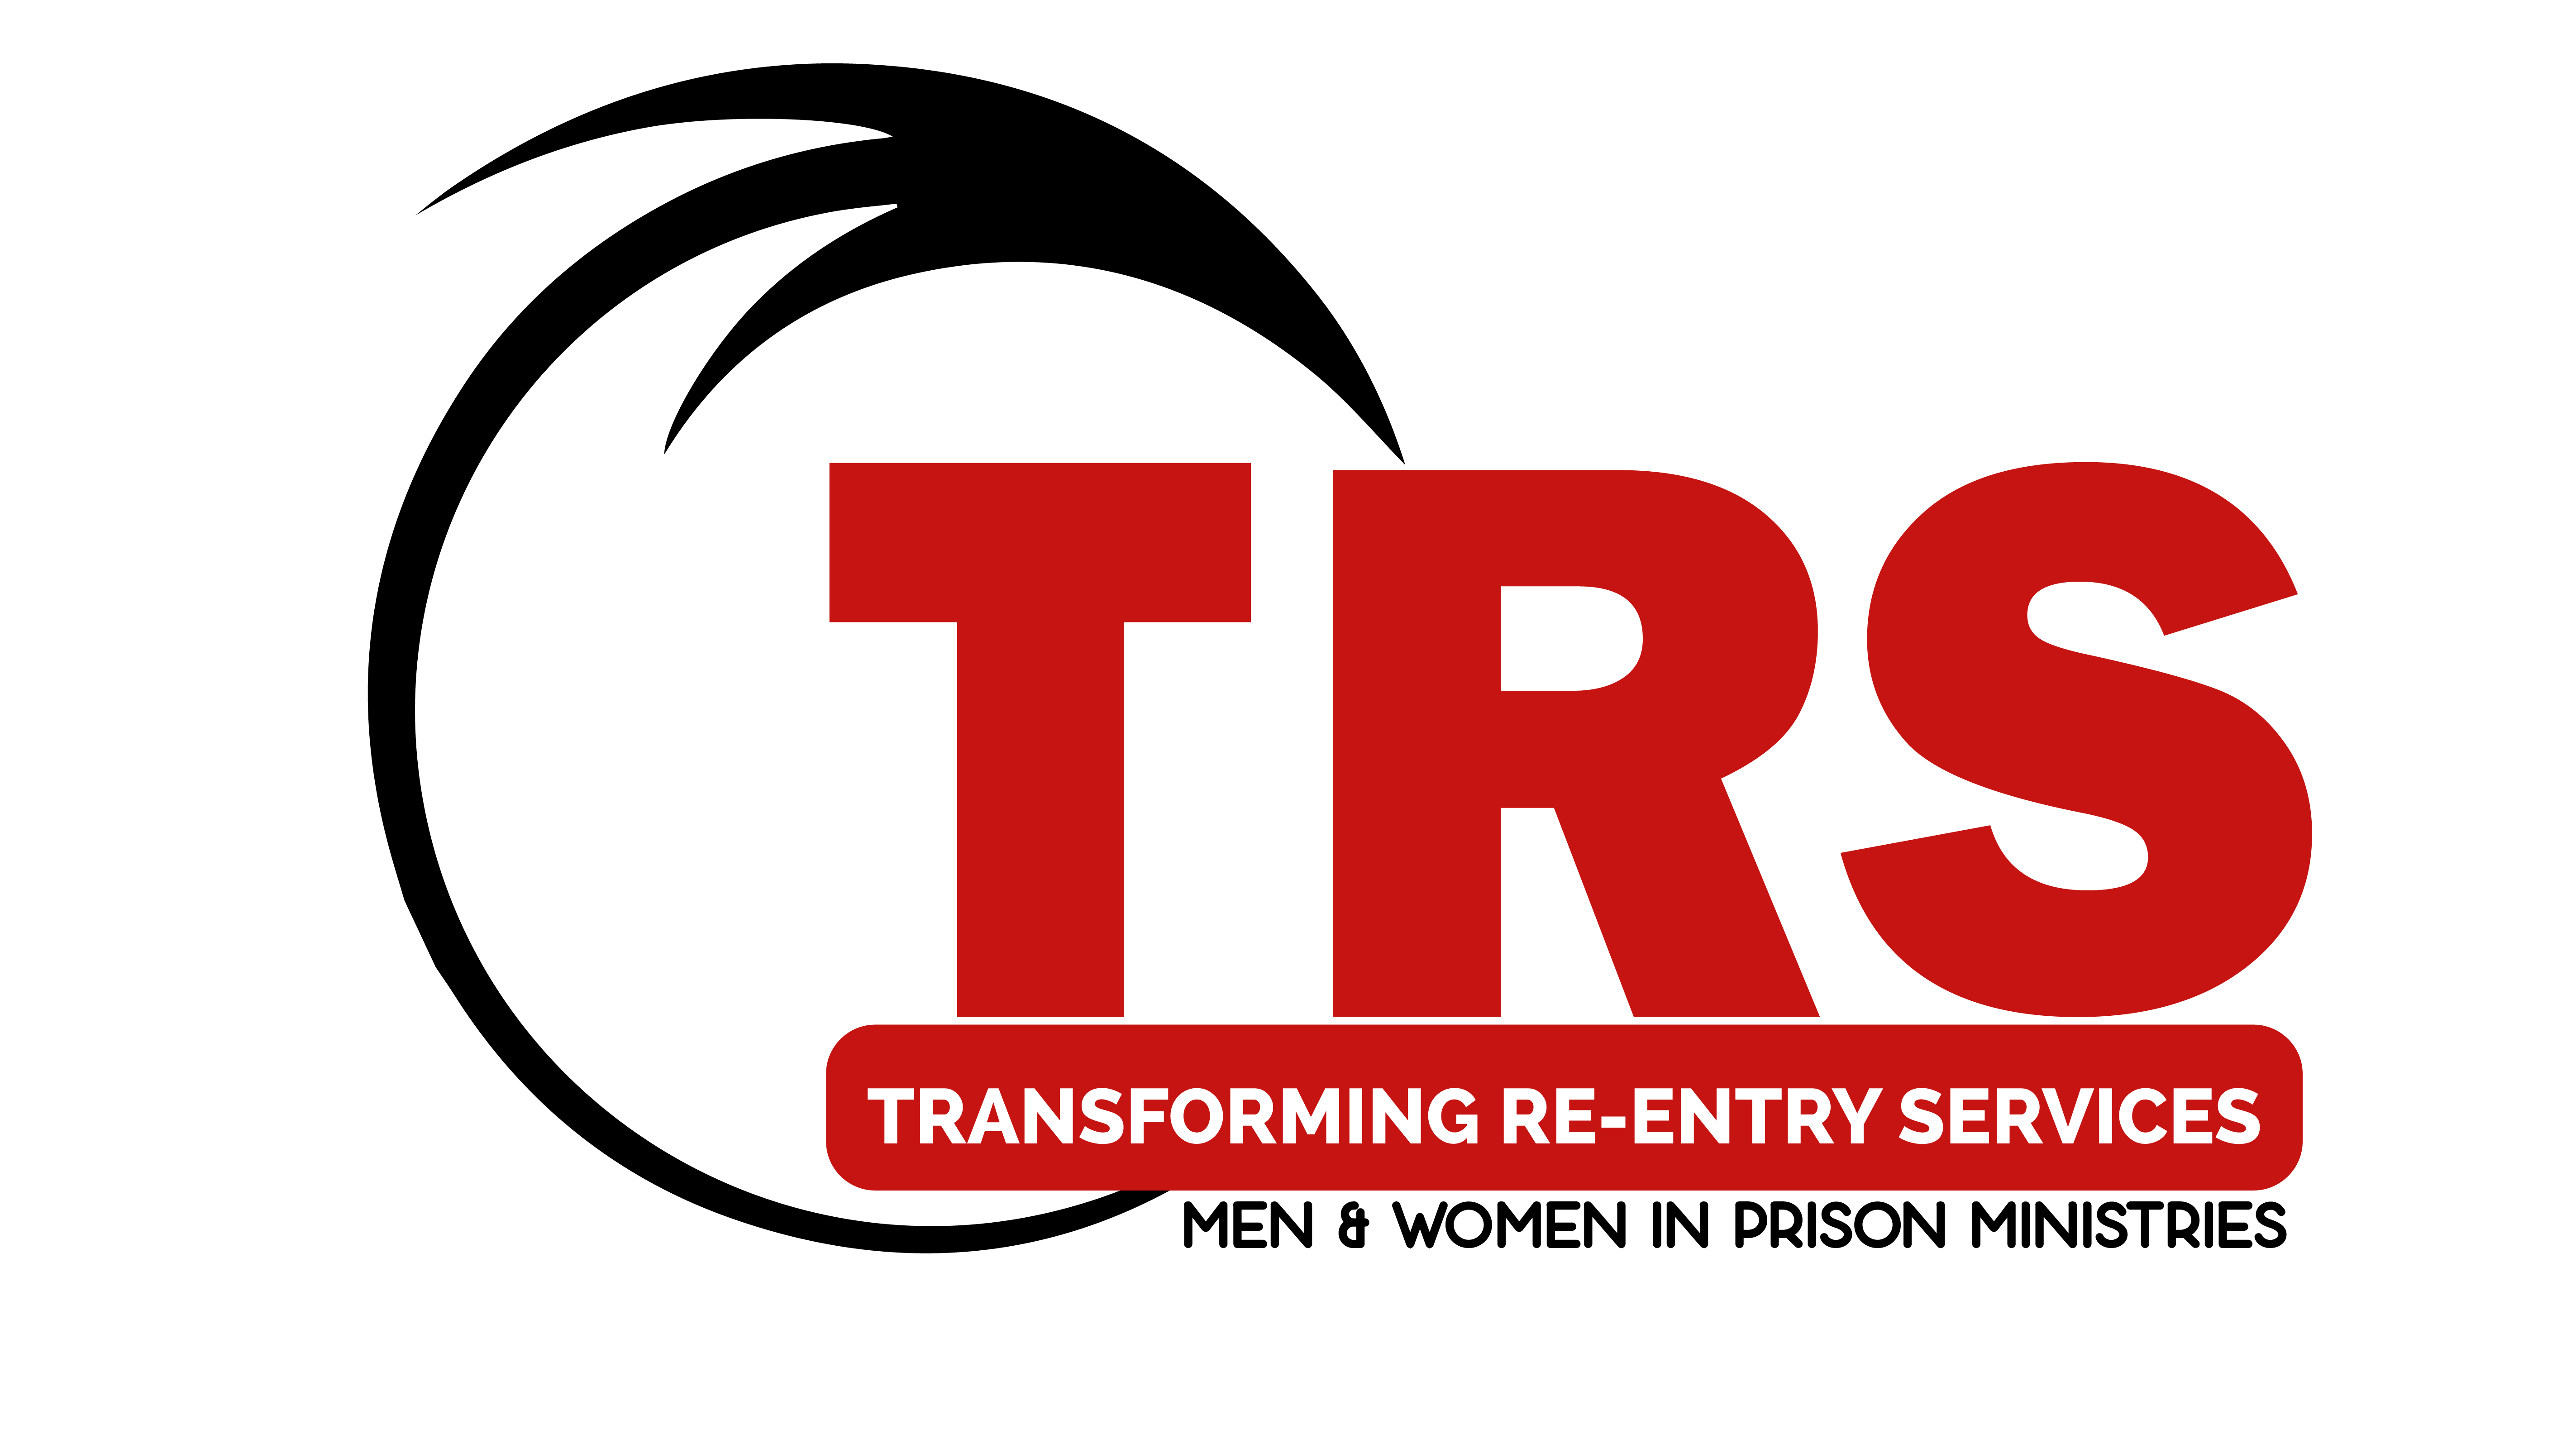 Transforming Re-entry Services